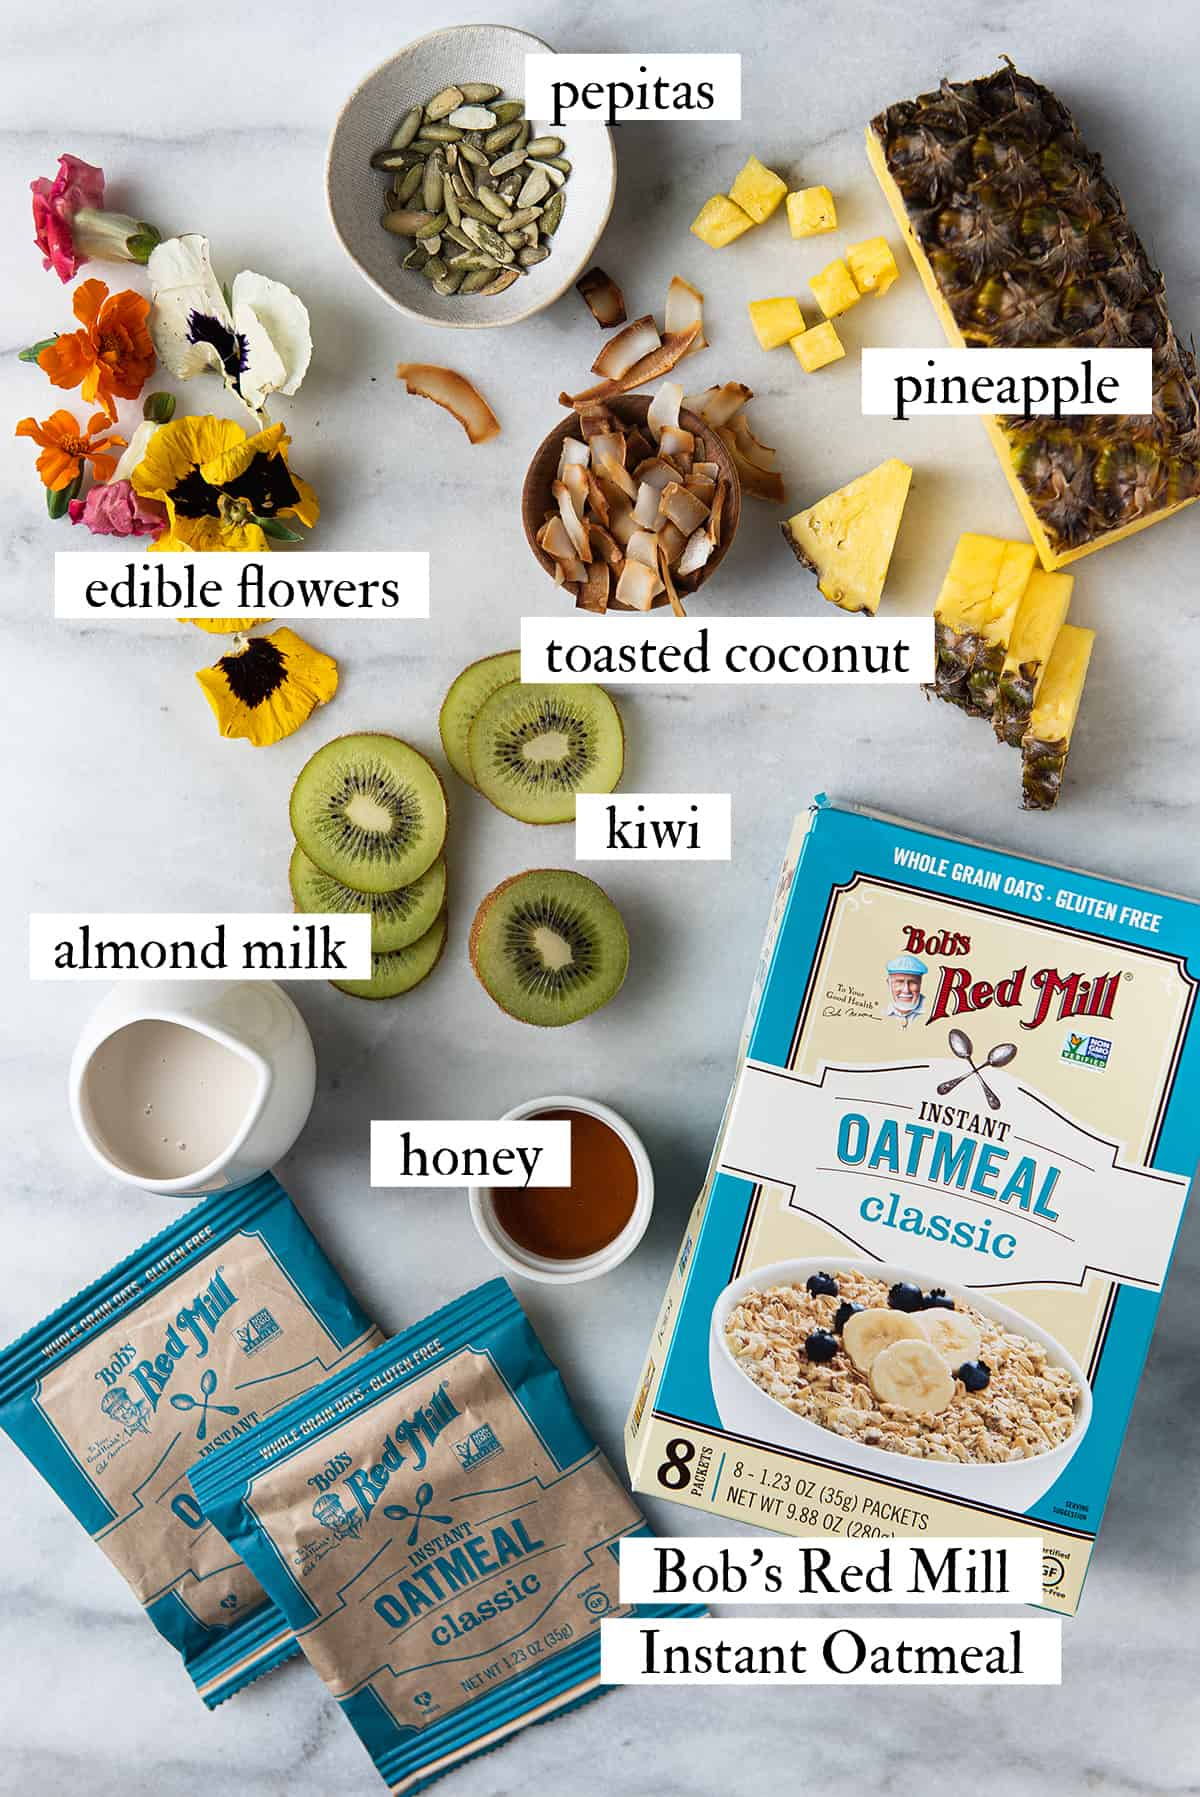 ingredients for oatmeal bowl on marble surface